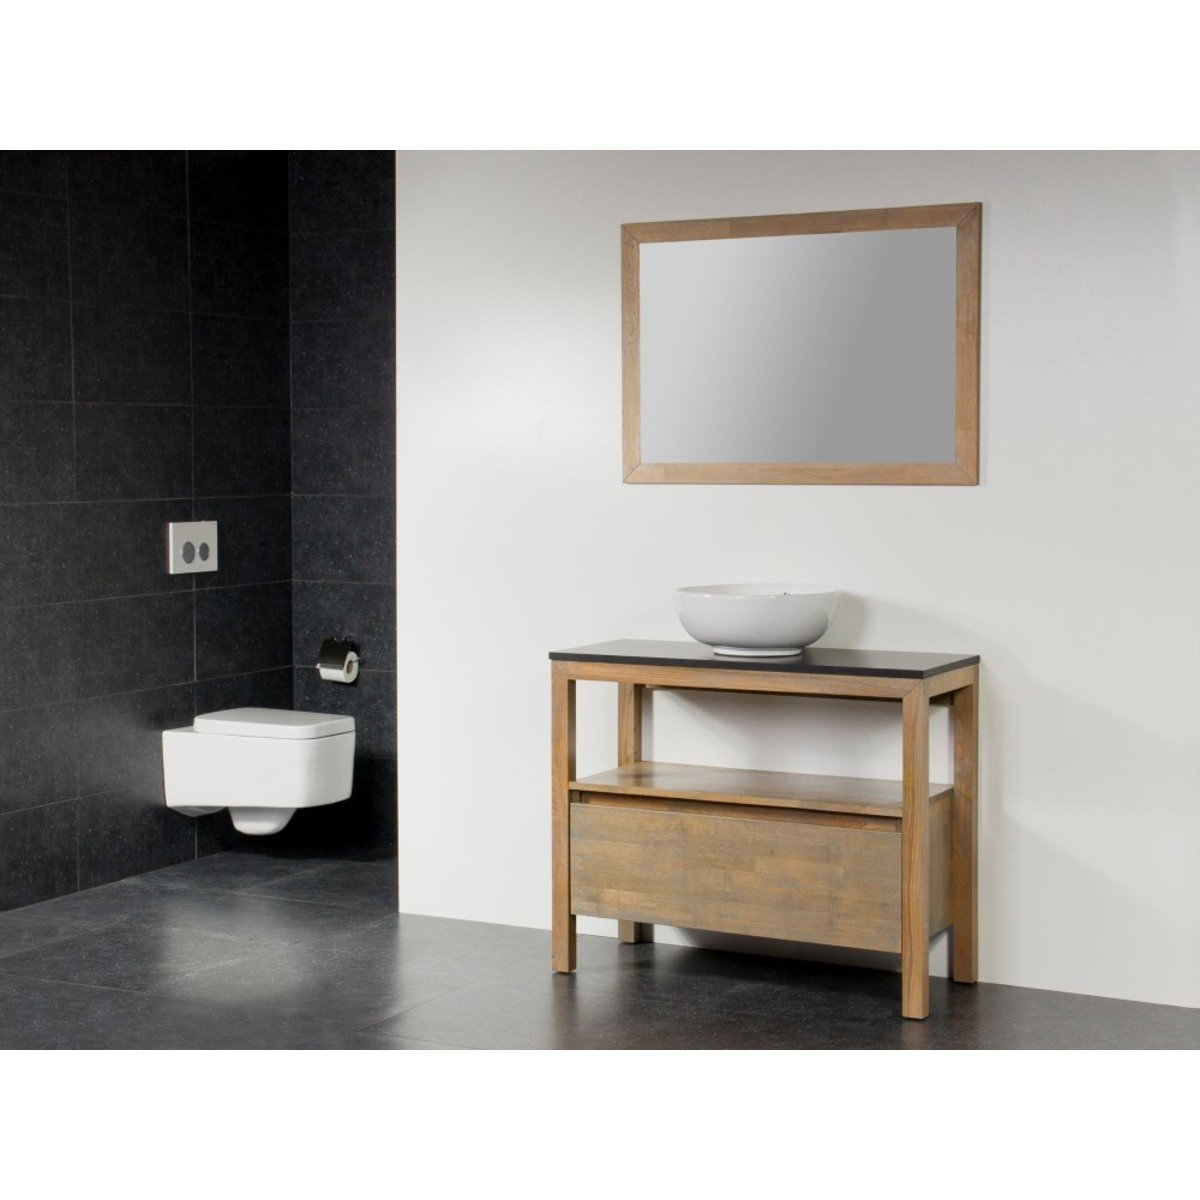 saniclass natural wood meuble salle de bain avec miroir 100cm grey oak avec vasque poser blanc. Black Bedroom Furniture Sets. Home Design Ideas